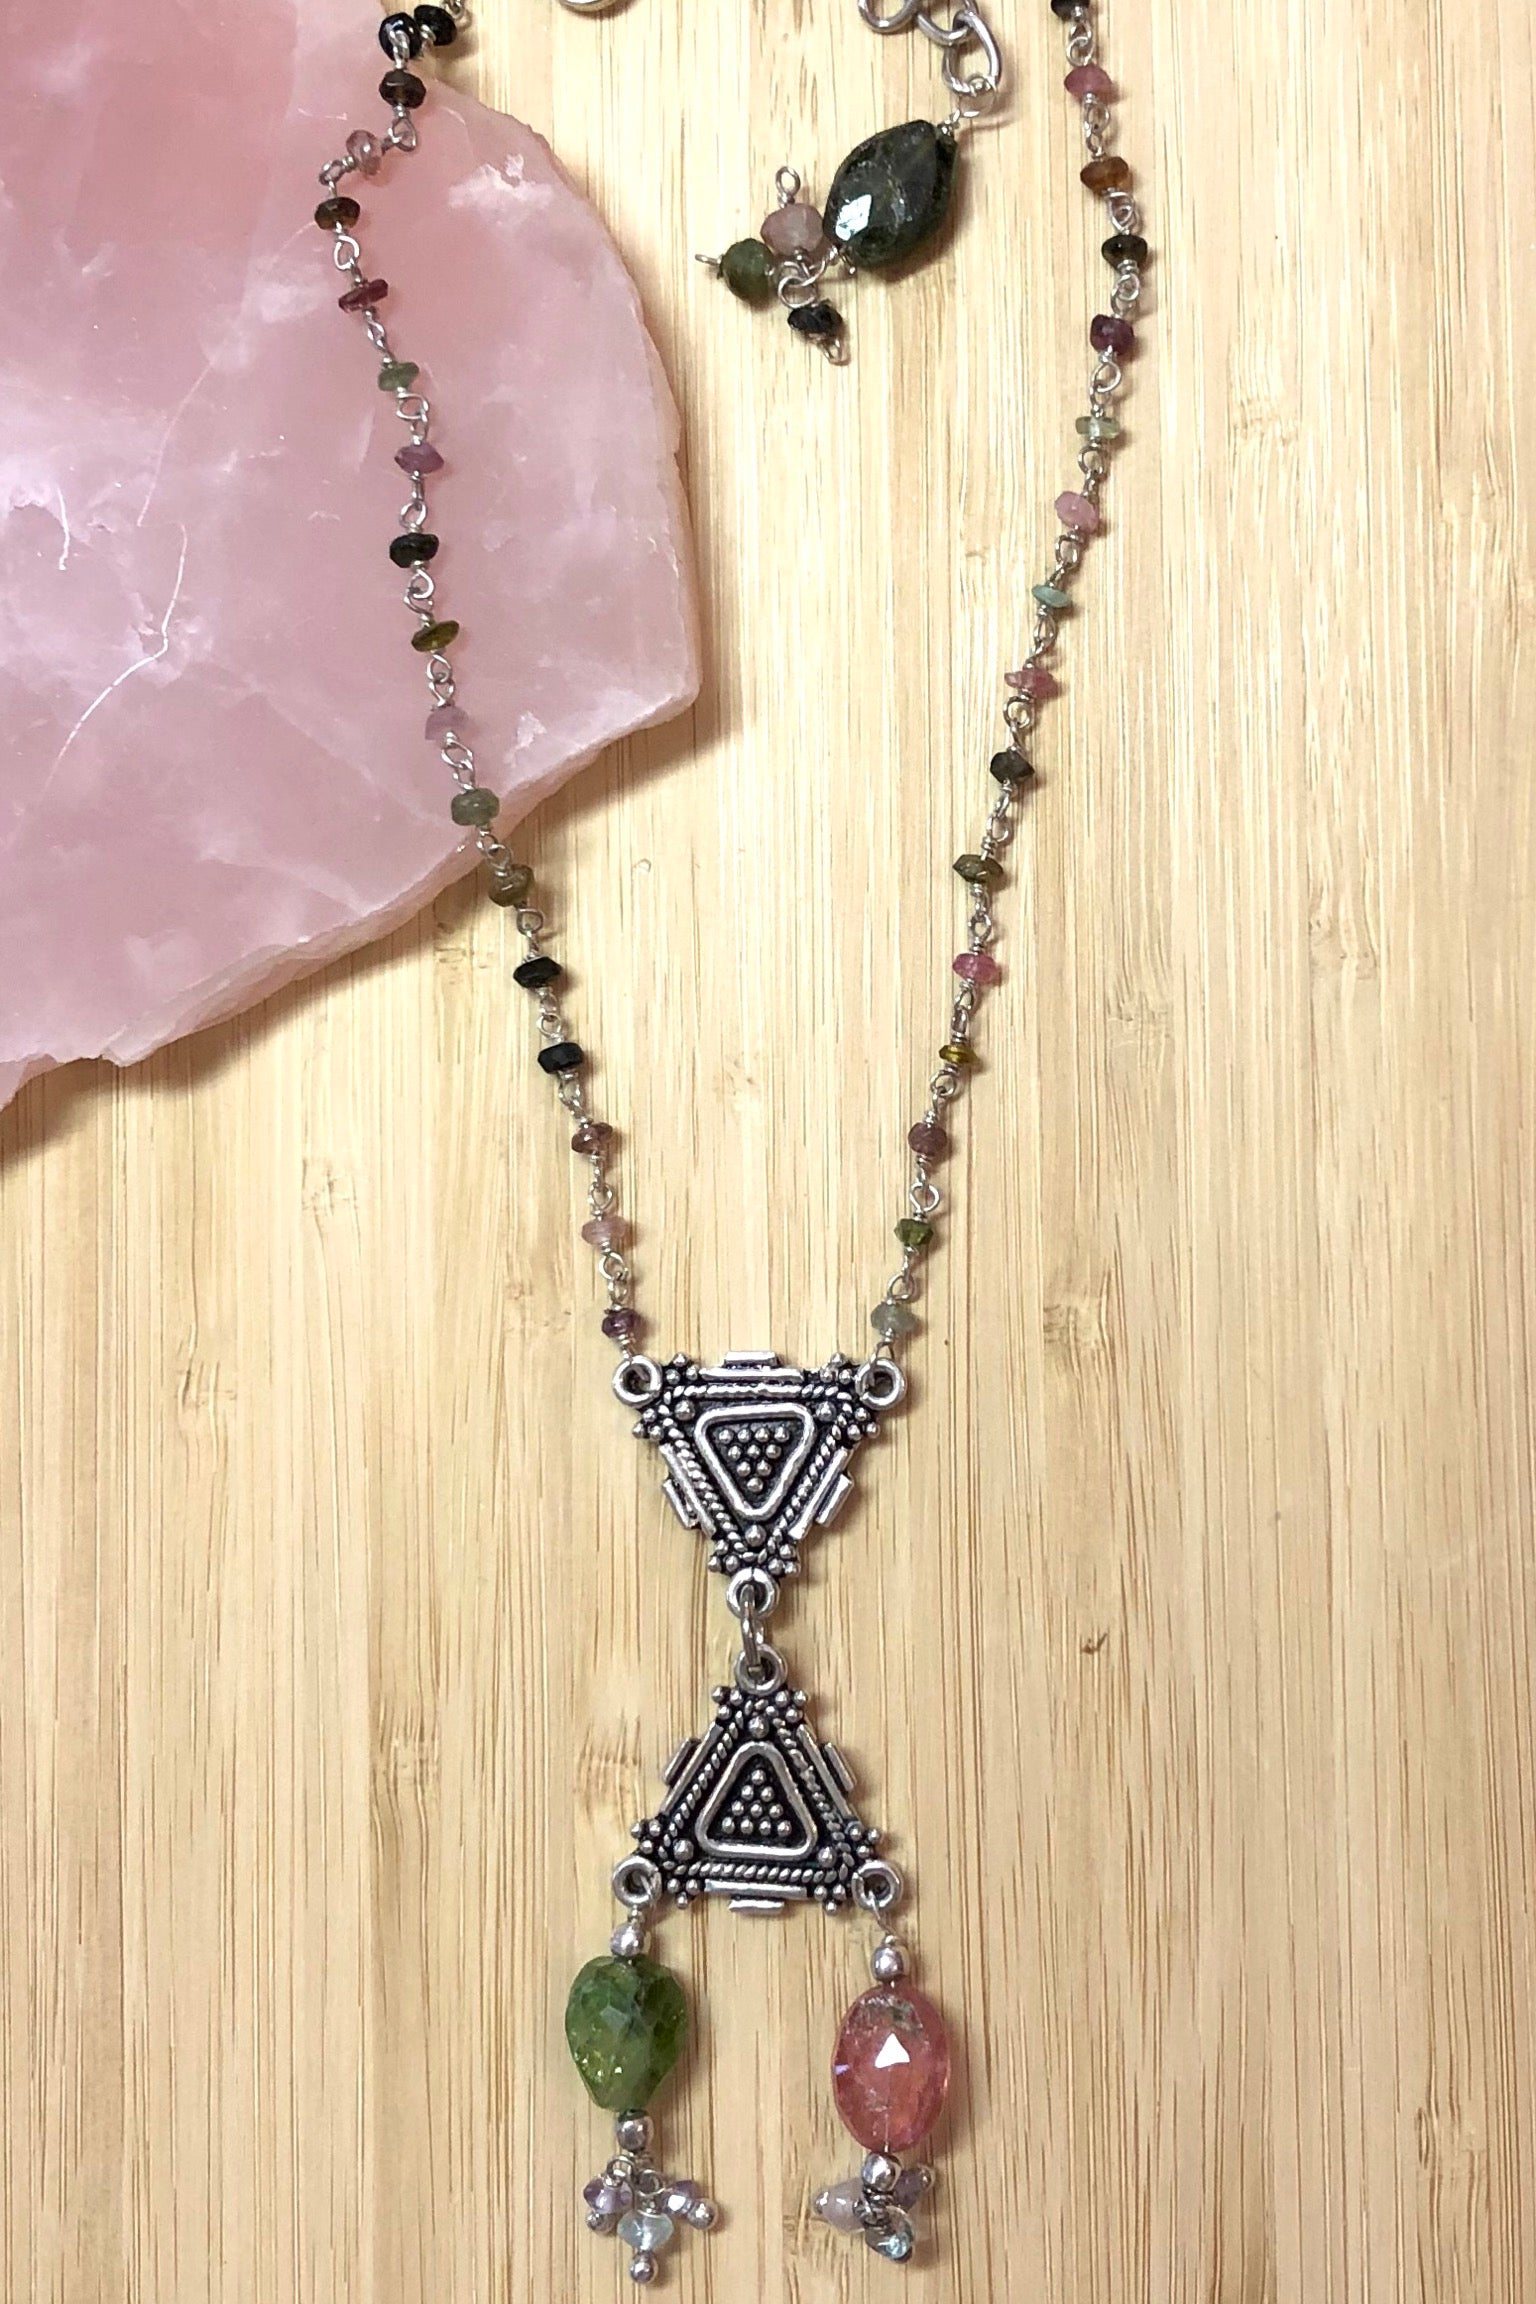 The Necklace Echo Tourmaline tangle has been designed using a variety of different coloured tourmaline gemstone beads and a Thai Silver centre piece.